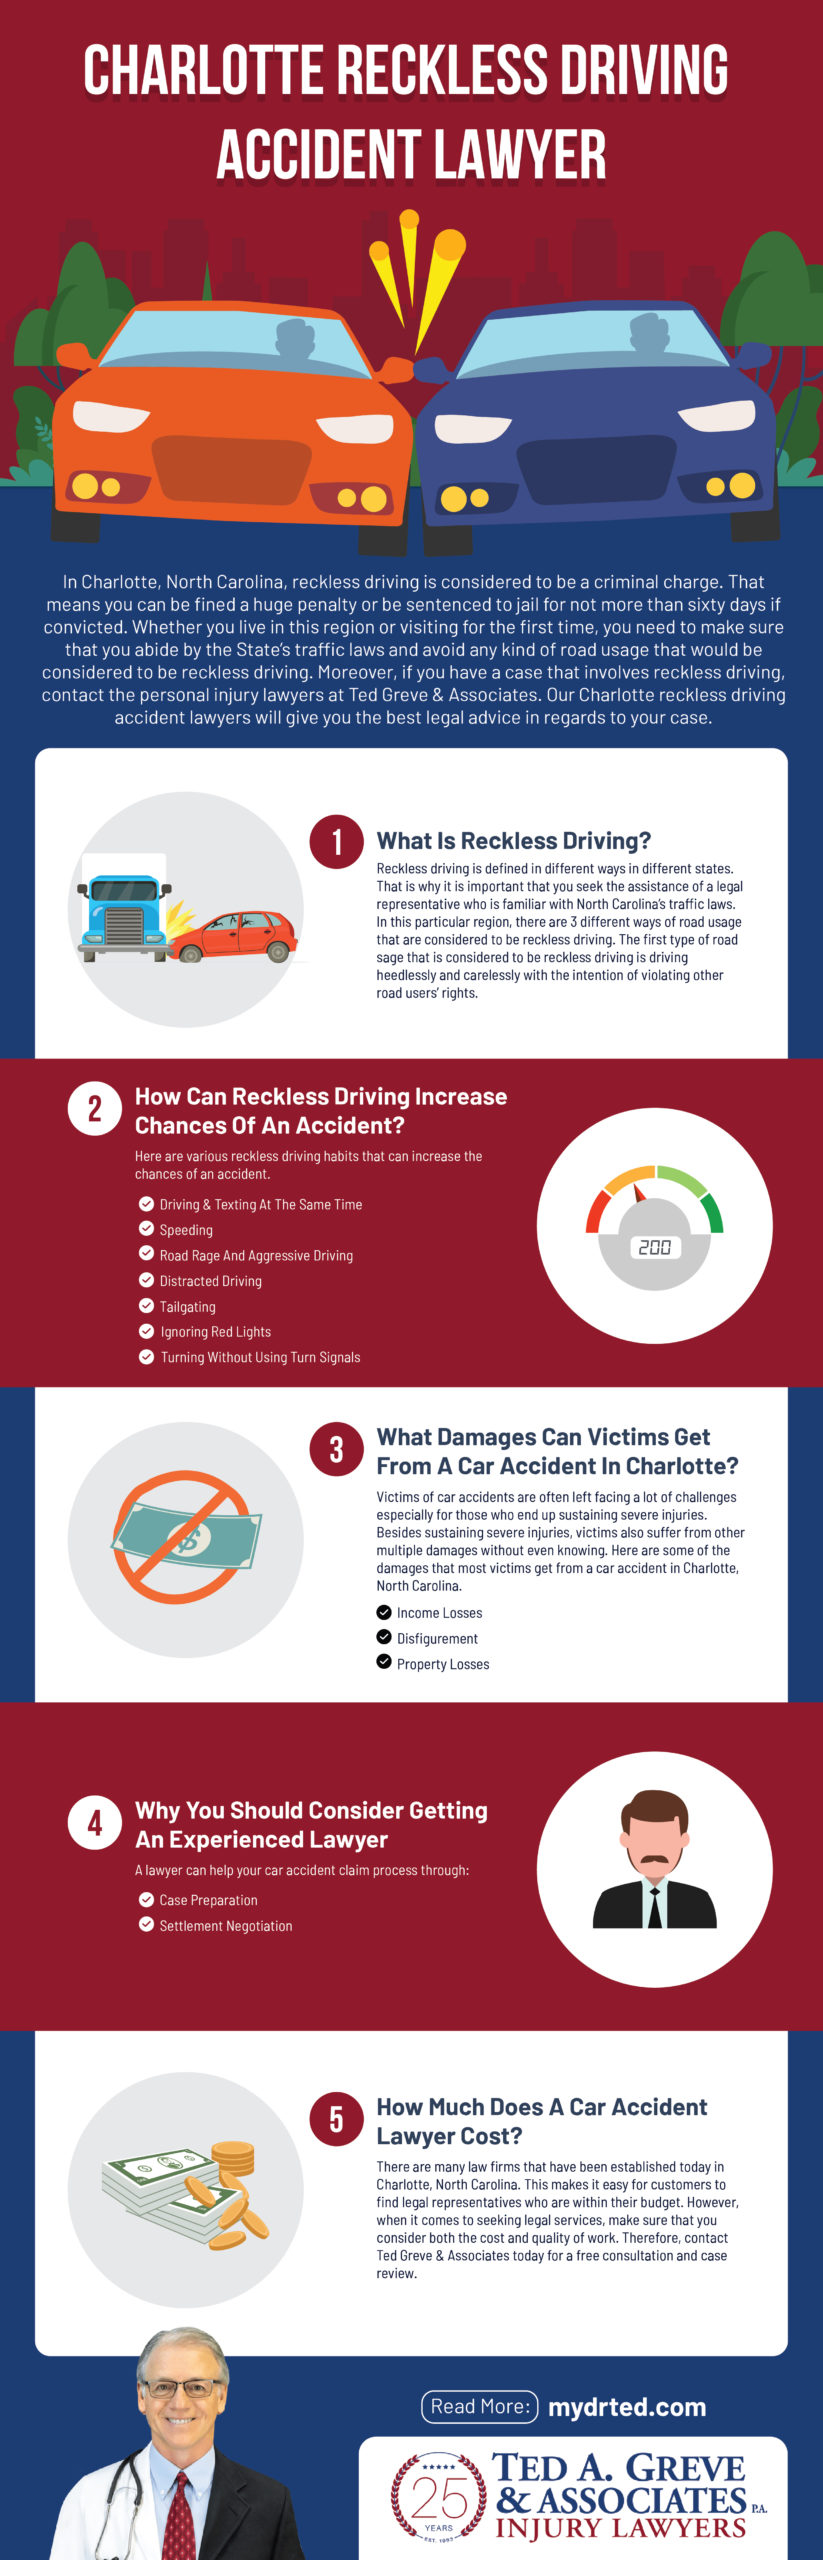 Ted Greve Charlotte Reckless Driving Accident Infographic